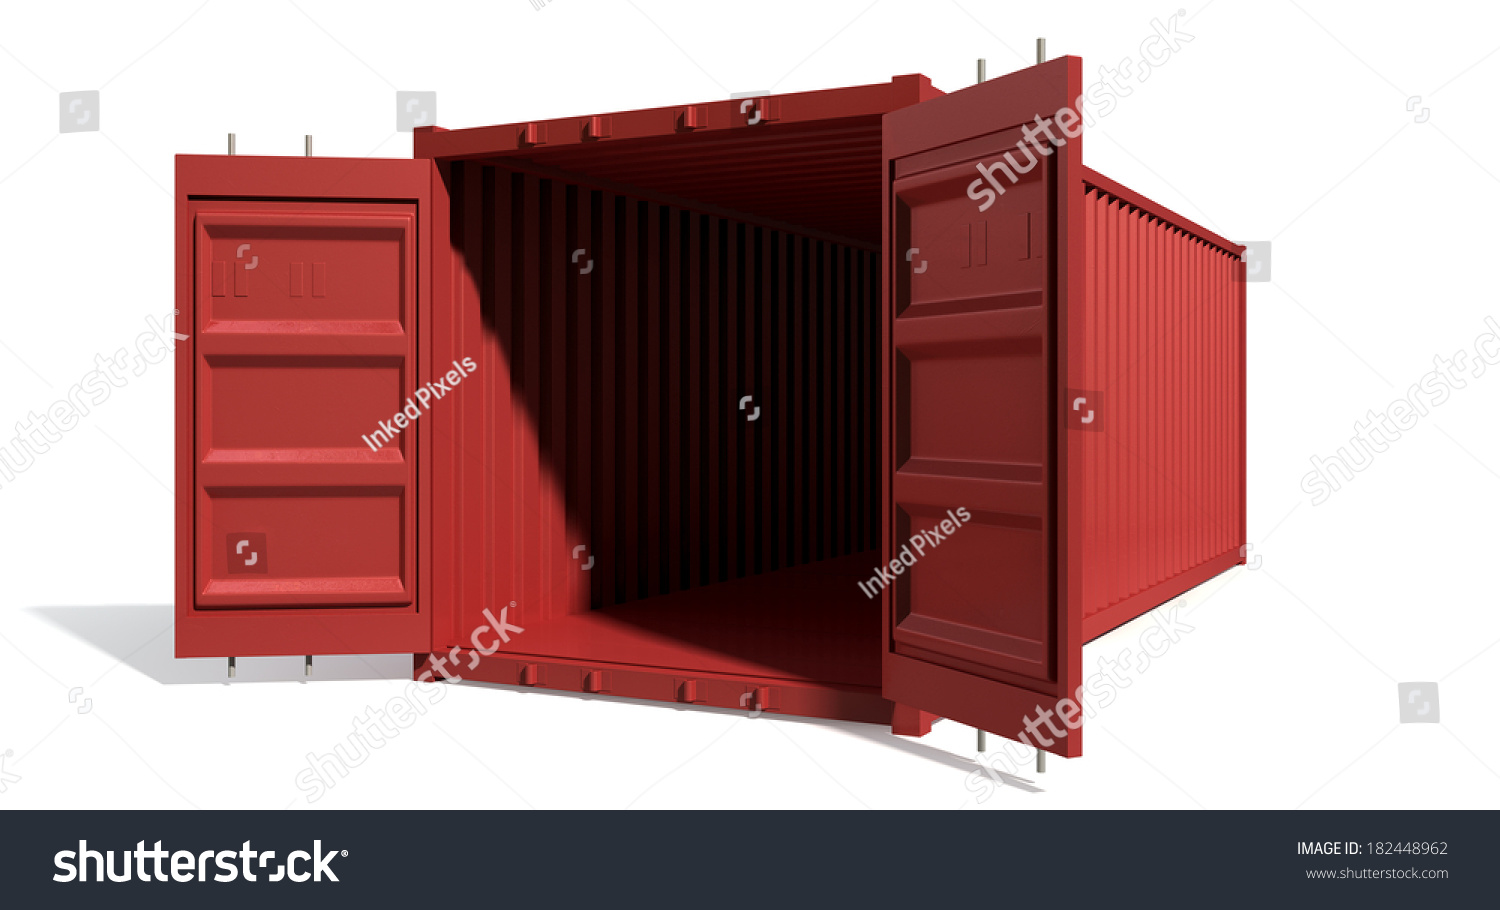 how to clean the inside of a shipping container